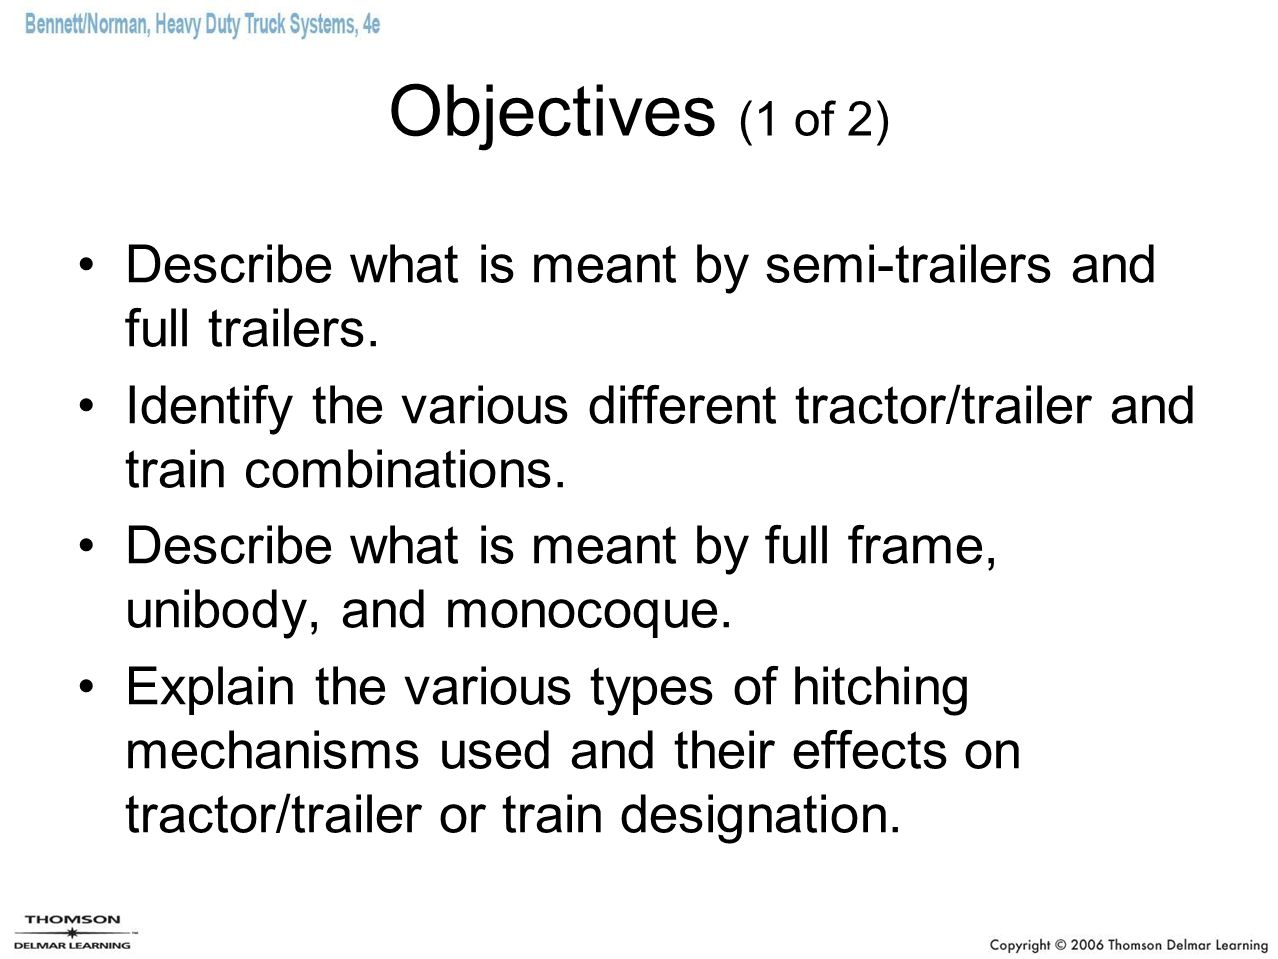 Chapter 33 Heavy-duty Truck Trailers. Objectives (1 of 2) Describe ...